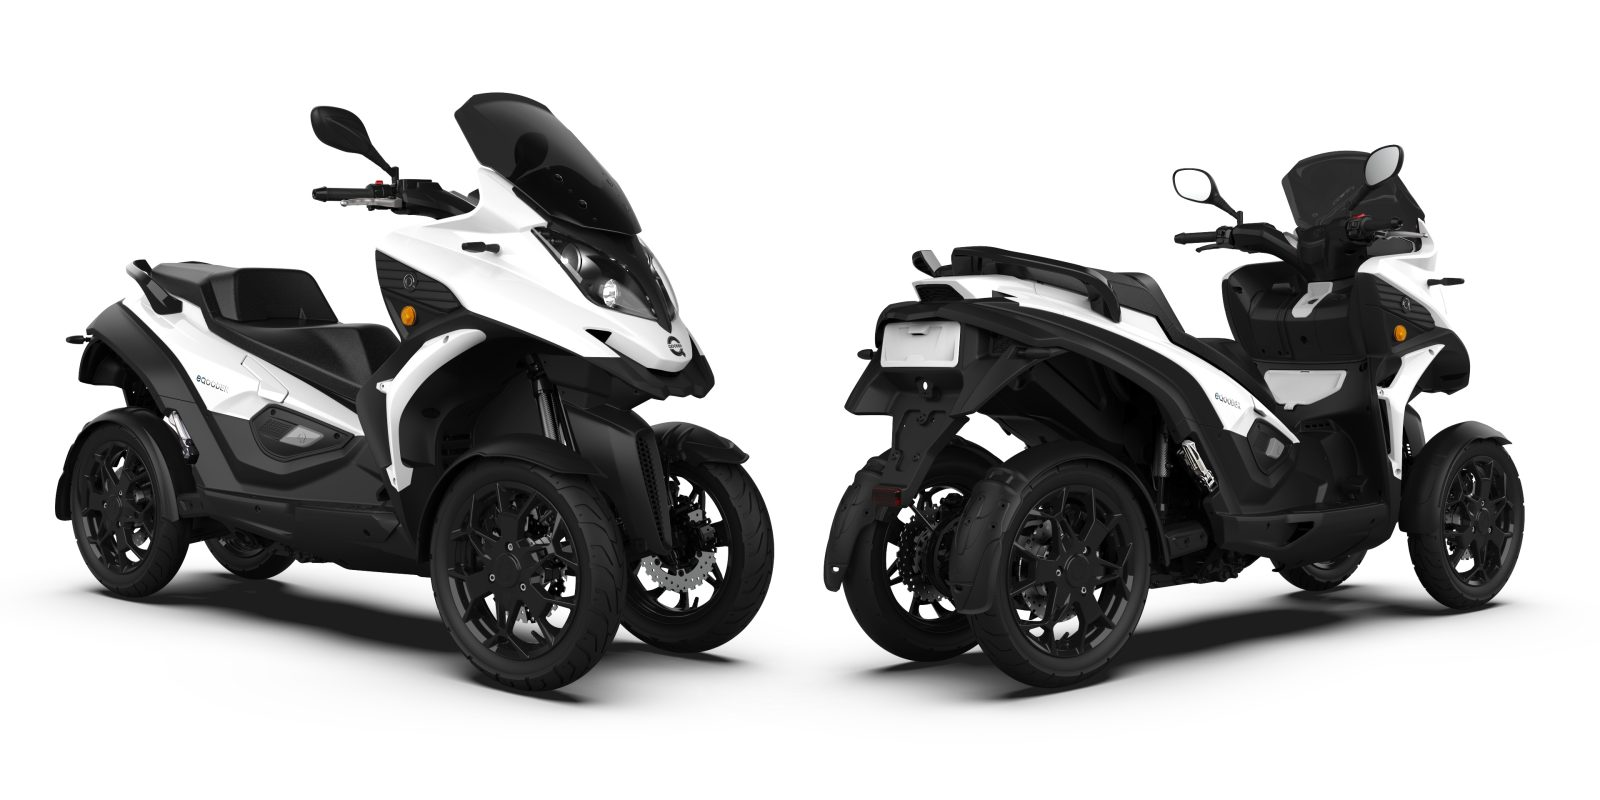 4 Wheel Eqooder With Zero Train Unveiled Is It An Electric Car Motorbike Or Scooter